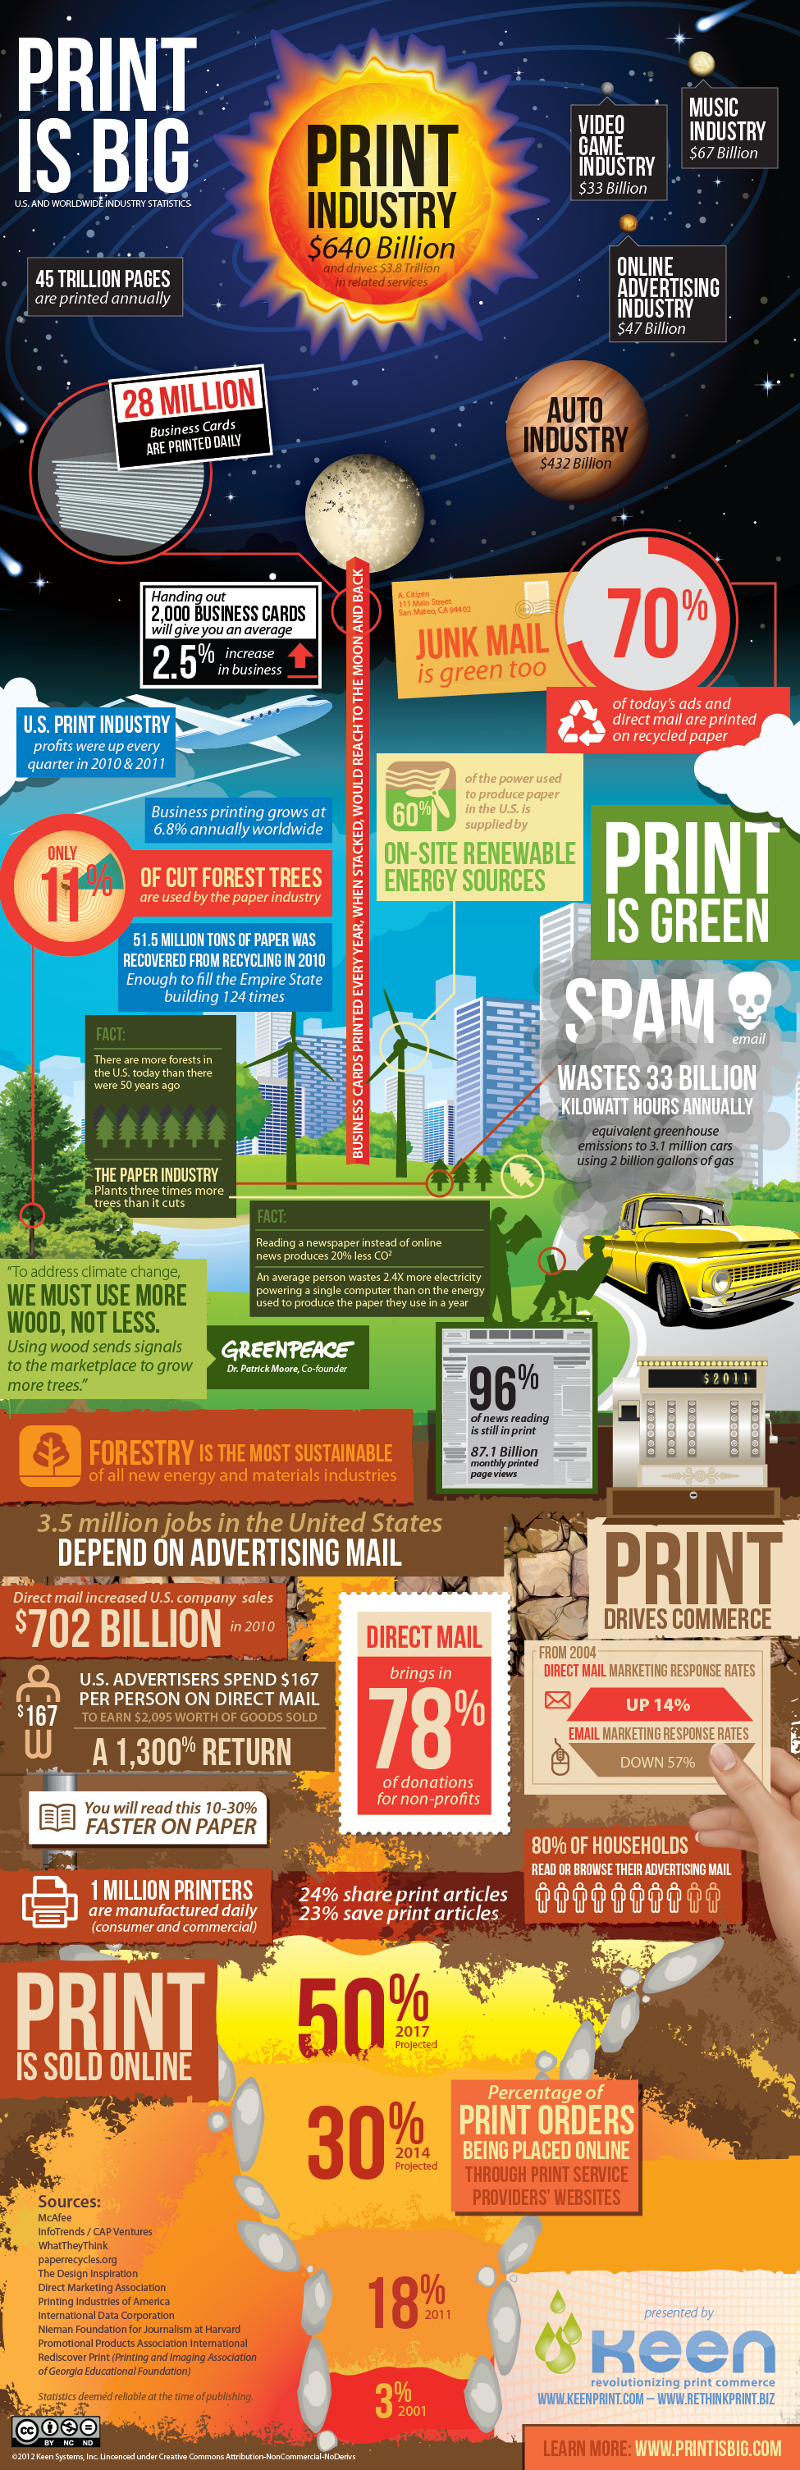 Printing Industry Statistics and Facts